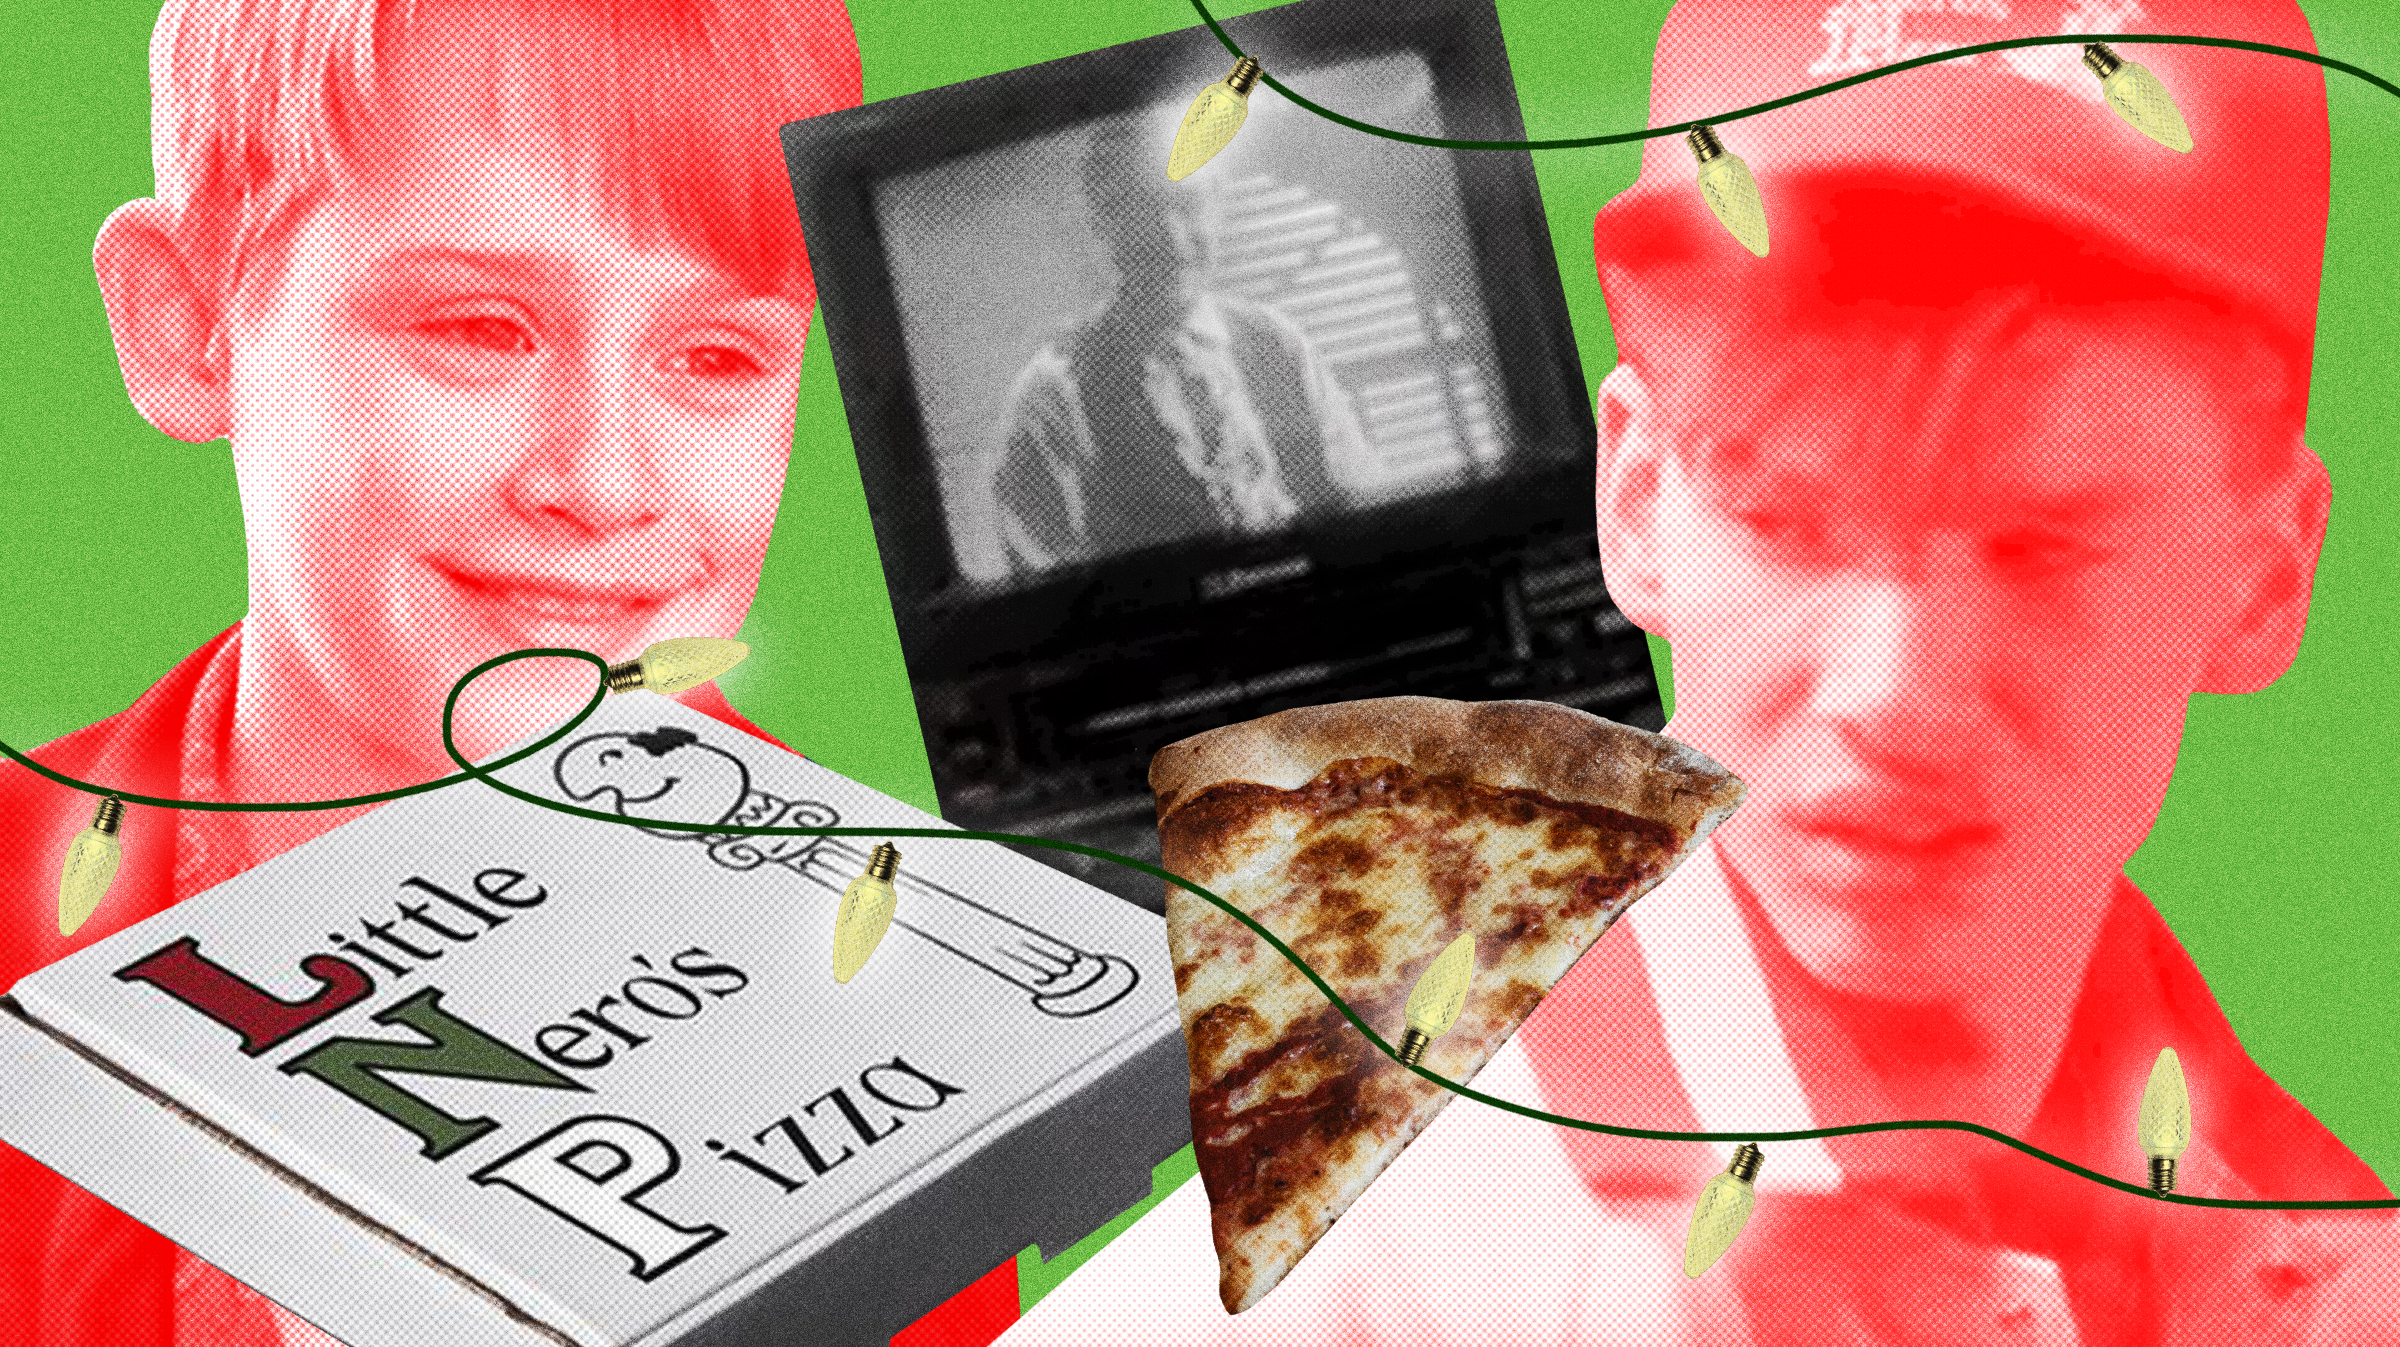 An Exhaustive Analysis Of The Iconic Pizza Scene In Home Alone